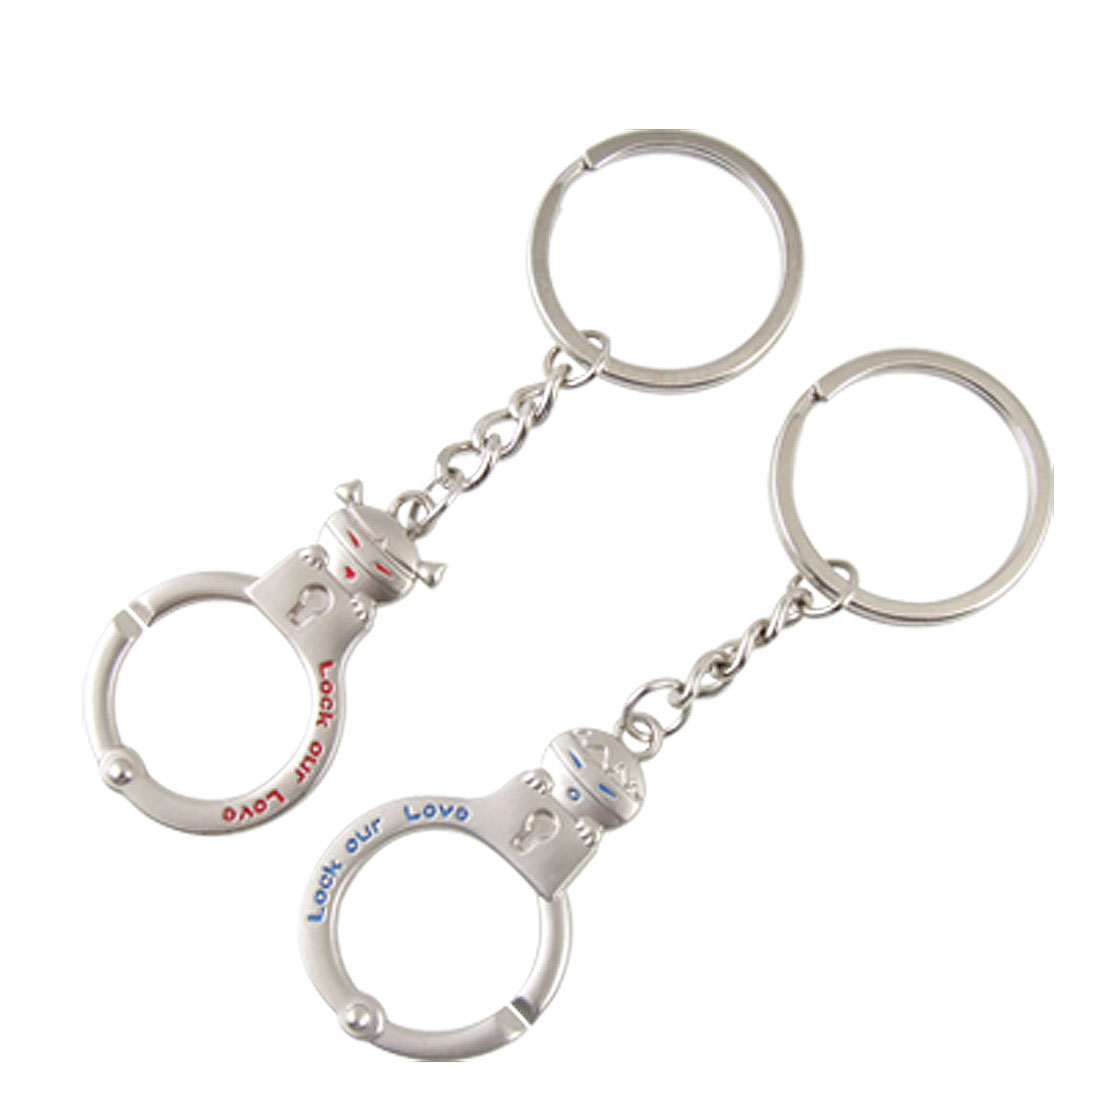 2 Pcs Silver Tone Boy Girl Pendant Metal Key Chain for Lover